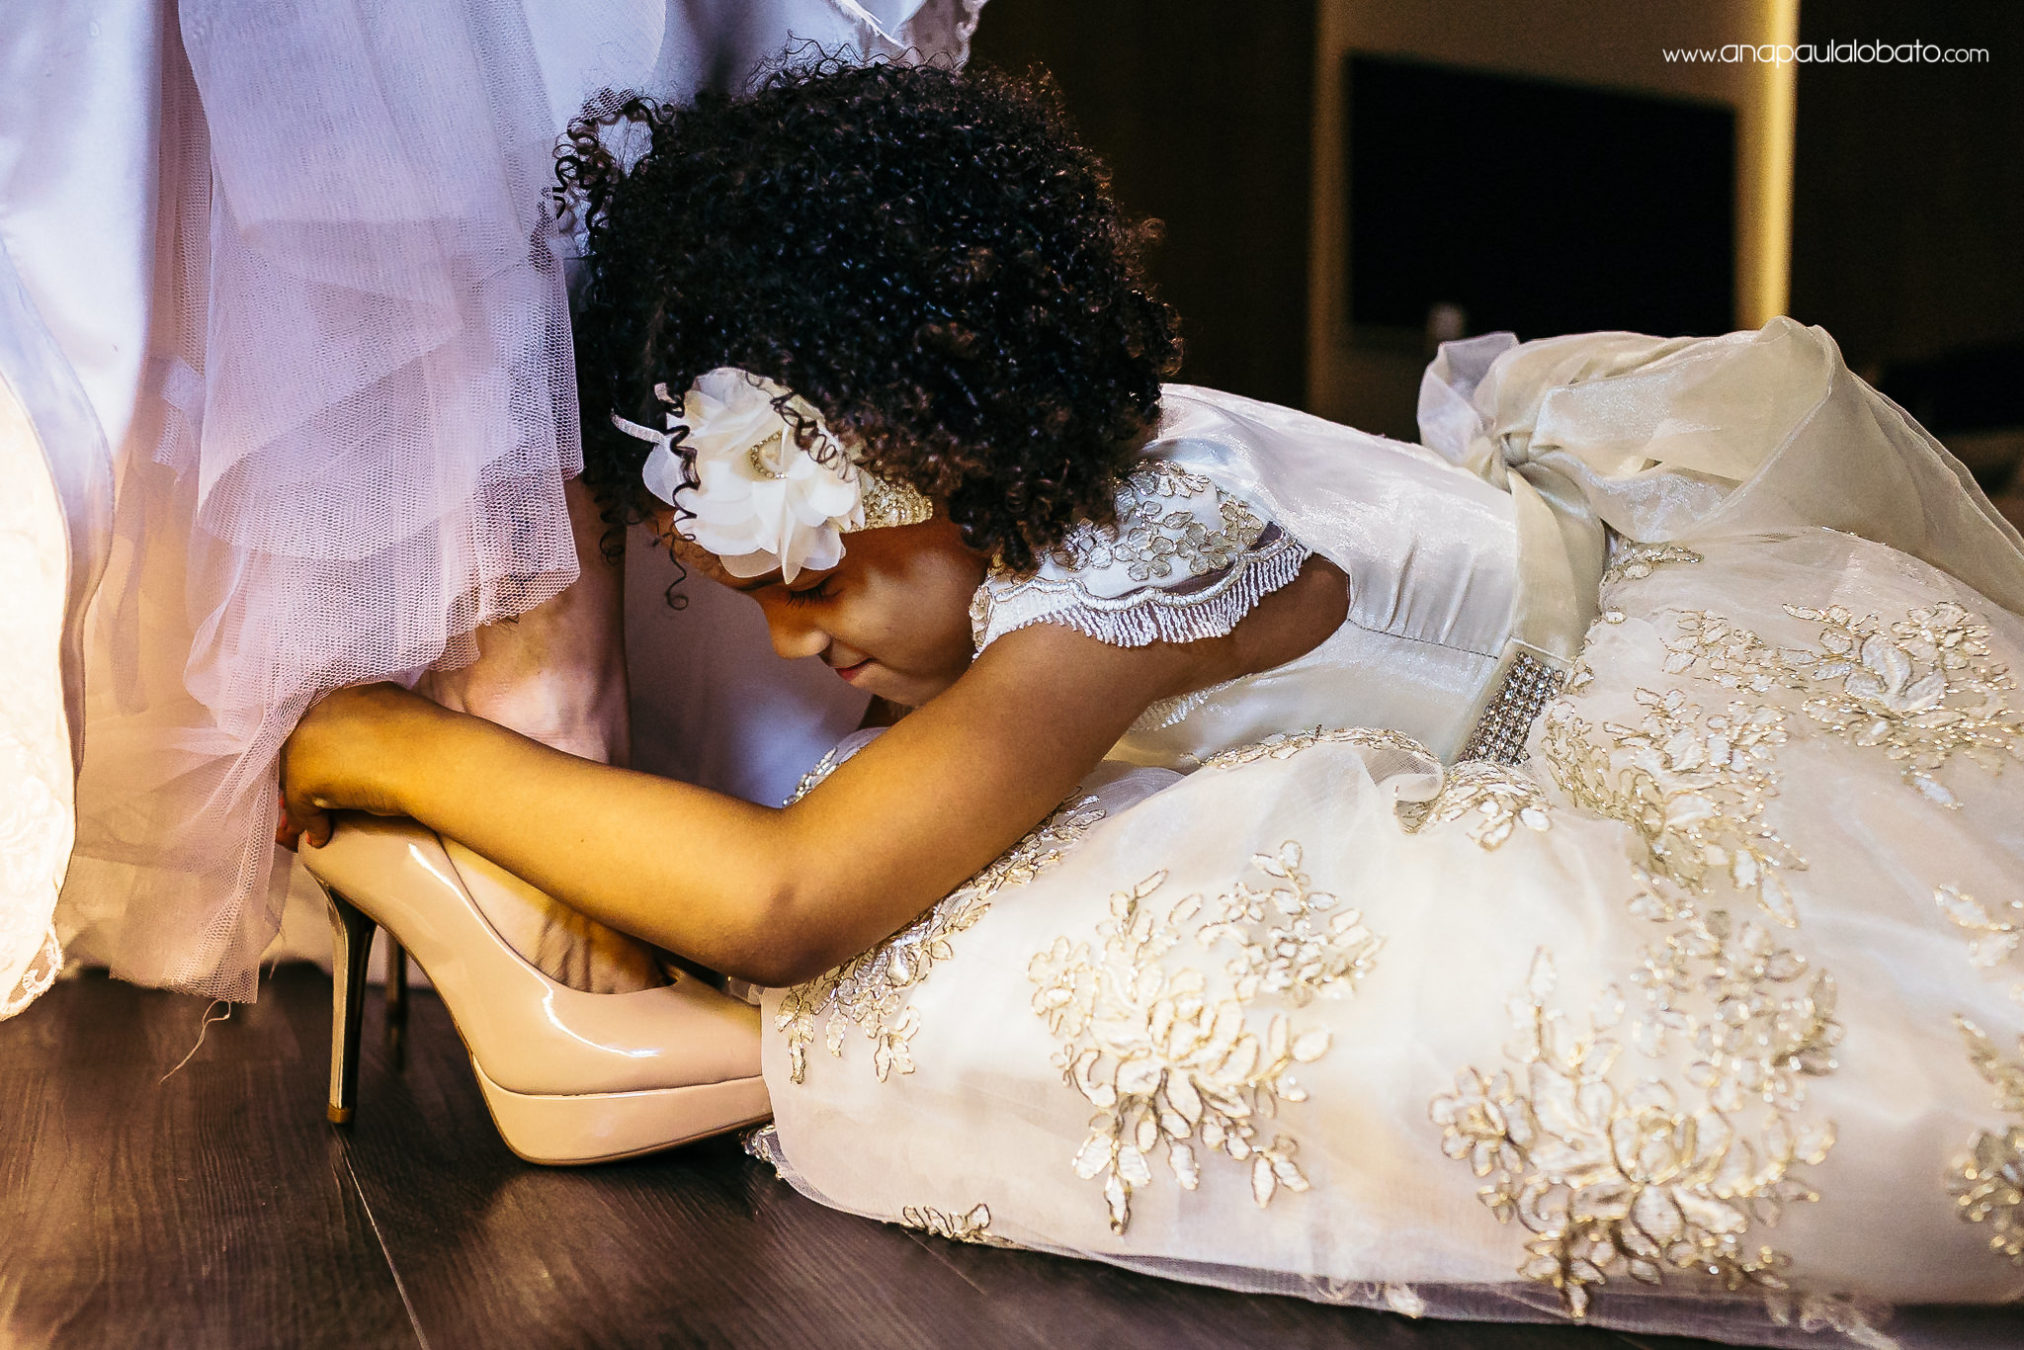 Daughter of the bride try to help her with the shoes